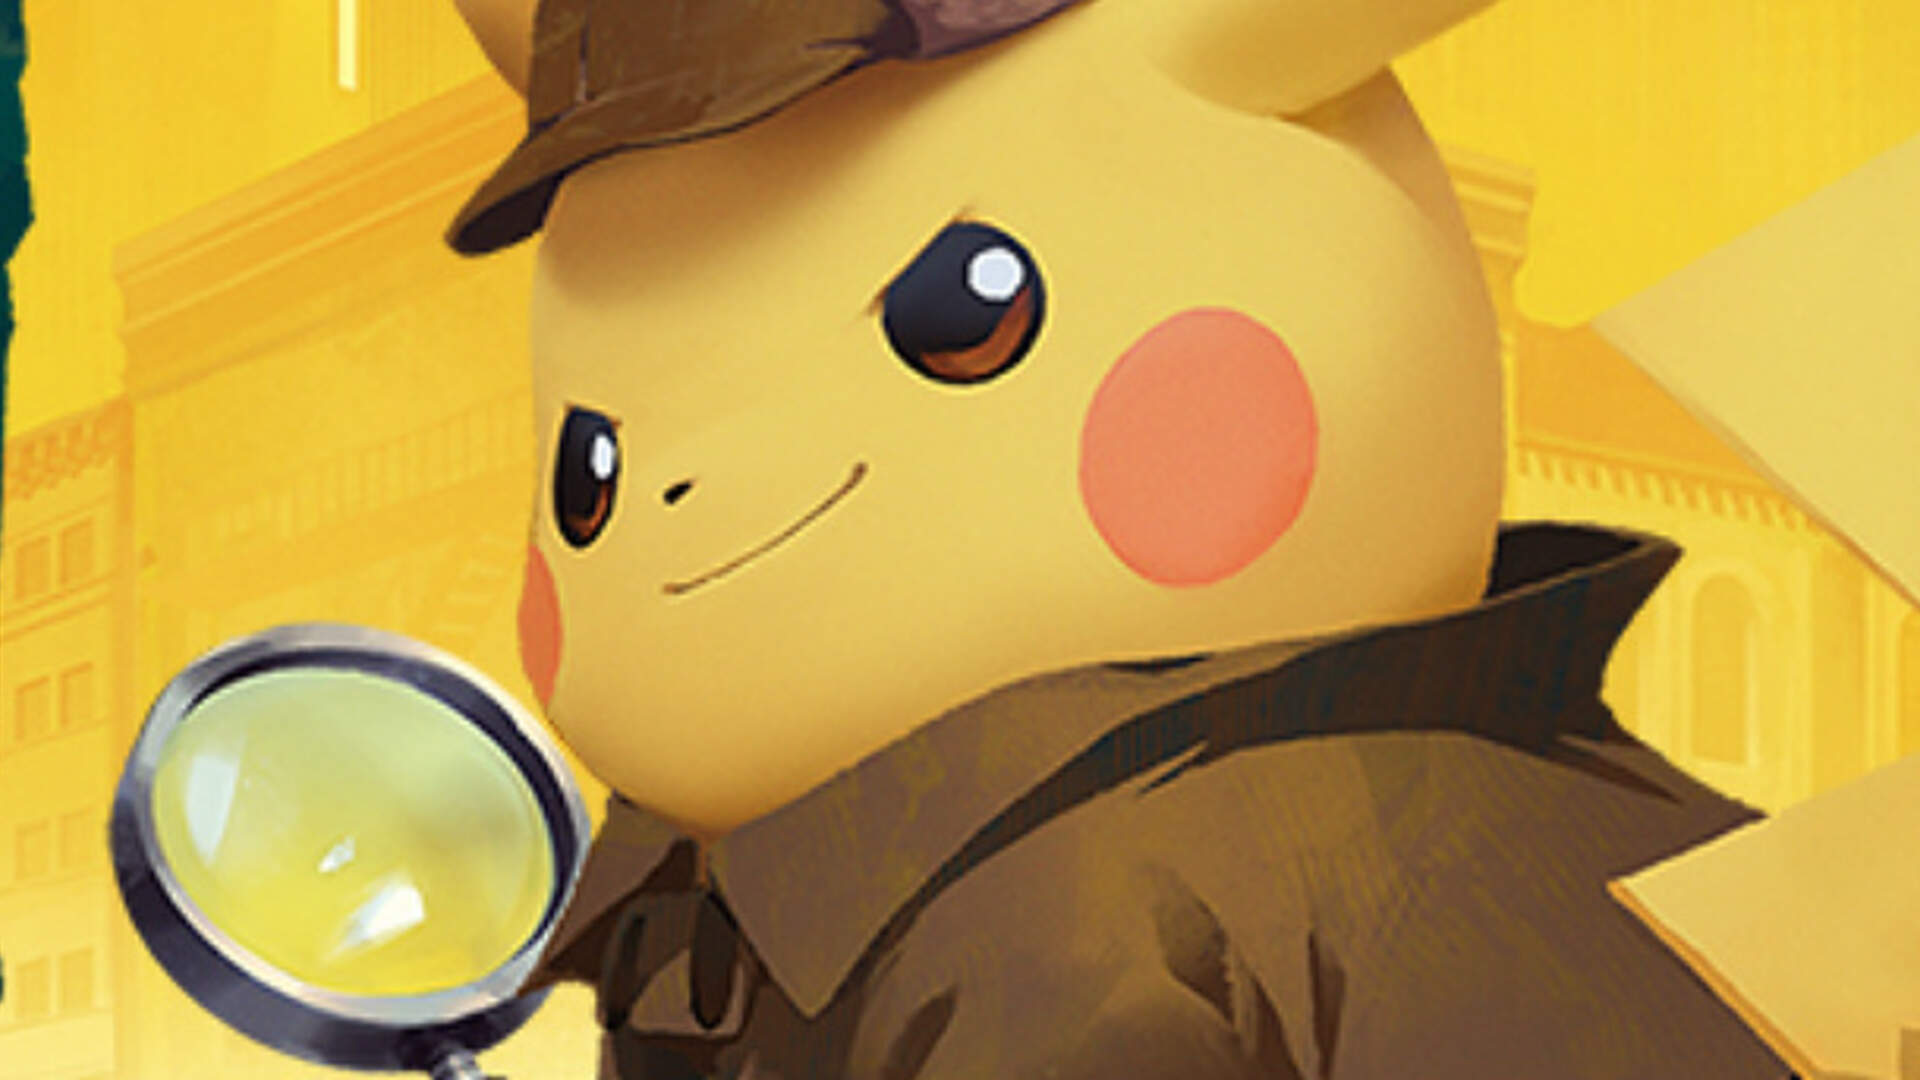 Pokemon Switch Rumors Hit Fever Pitch, Leaks Suggest It's a Yellow Remake Tied to Pokemon Go